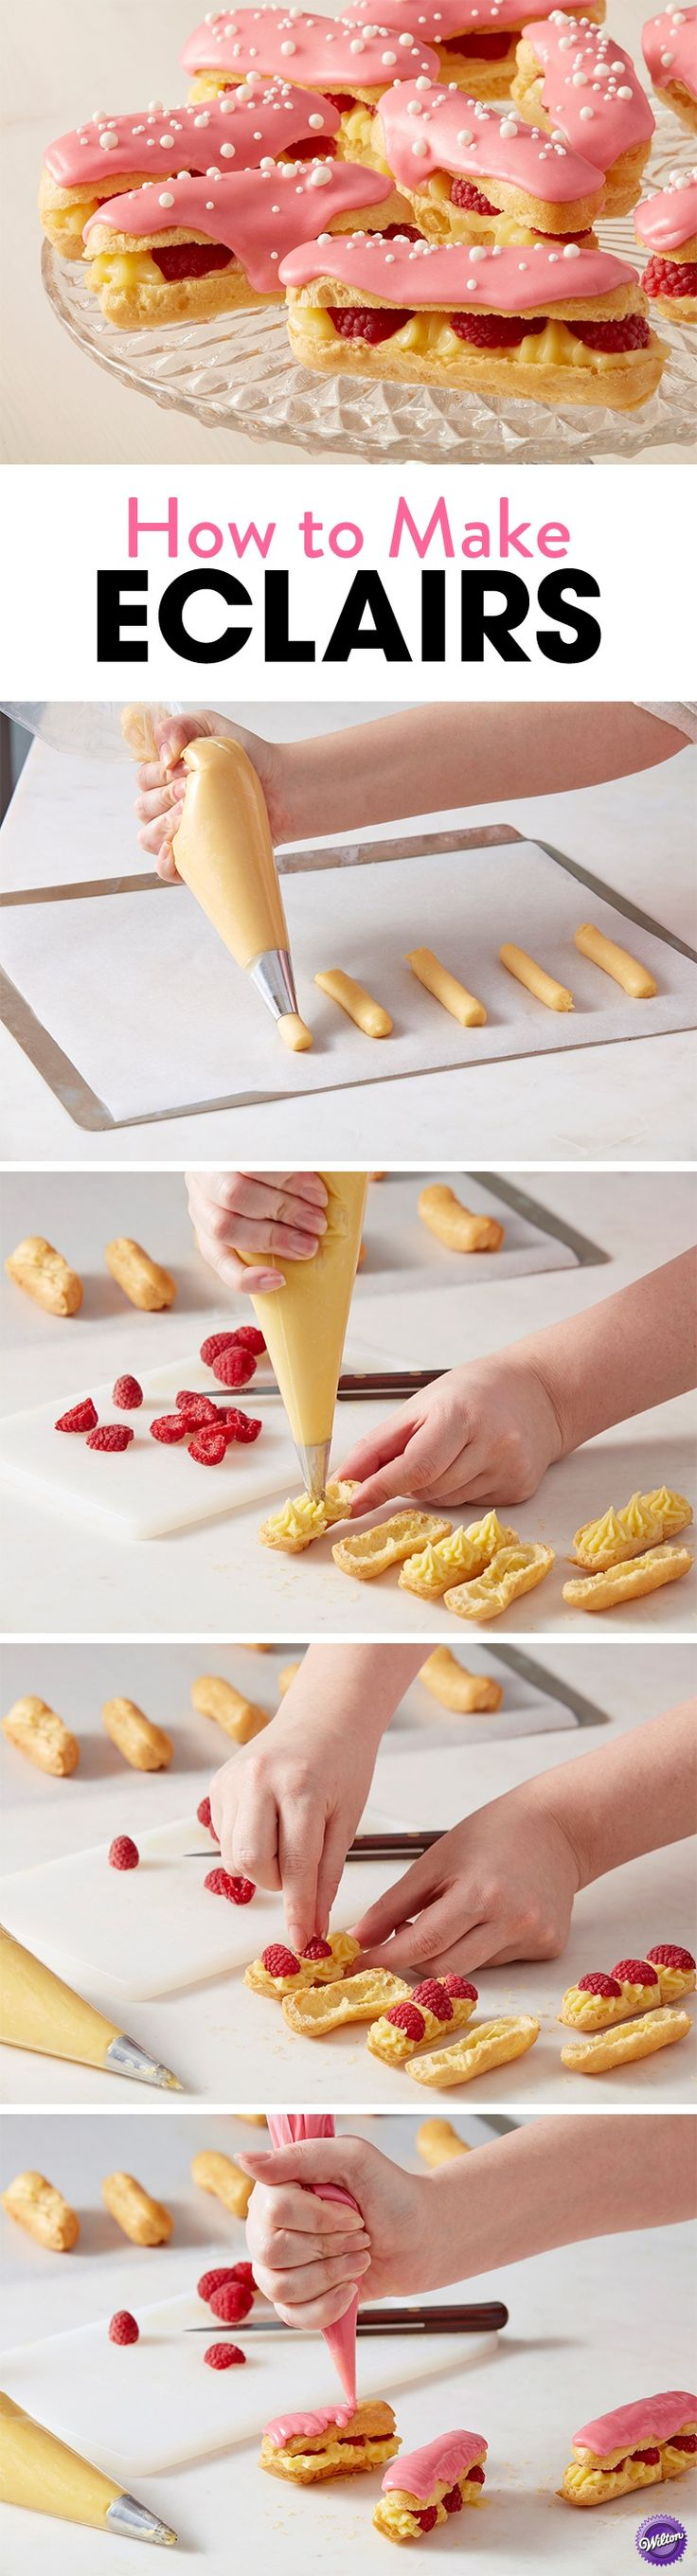 Best of Home and Garden: White Chocolate Raspberry Éclairs